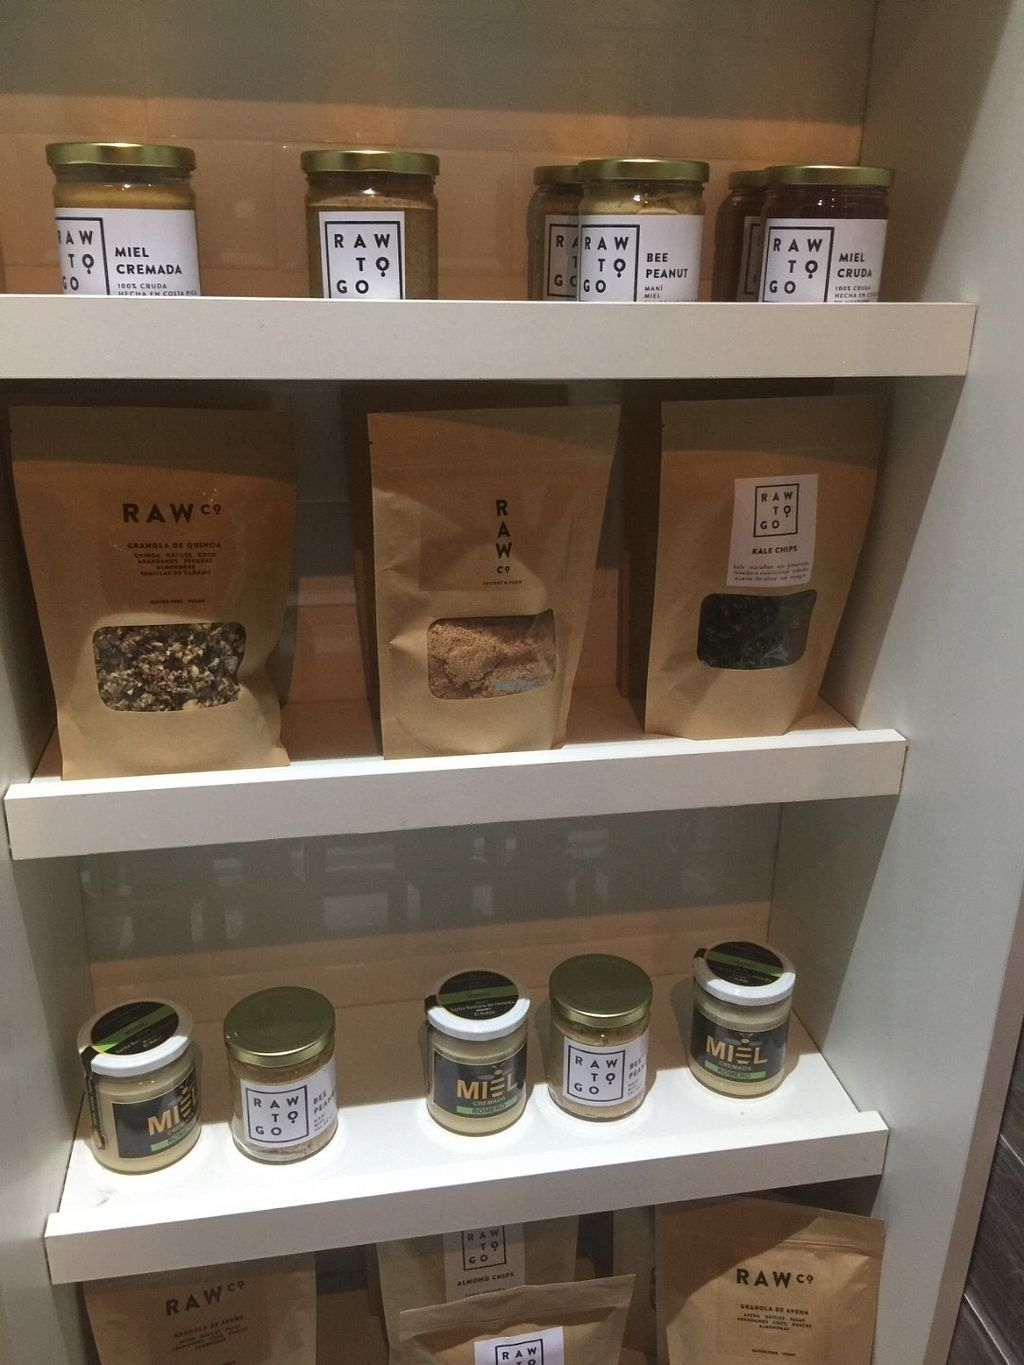 "Photo of Raw Co. Juicery and Food  by <a href=""/members/profile/Gvegan"">Gvegan</a> <br/>Raw choices <br/> October 26, 2016  - <a href='/contact/abuse/image/58106/184446'>Report</a>"